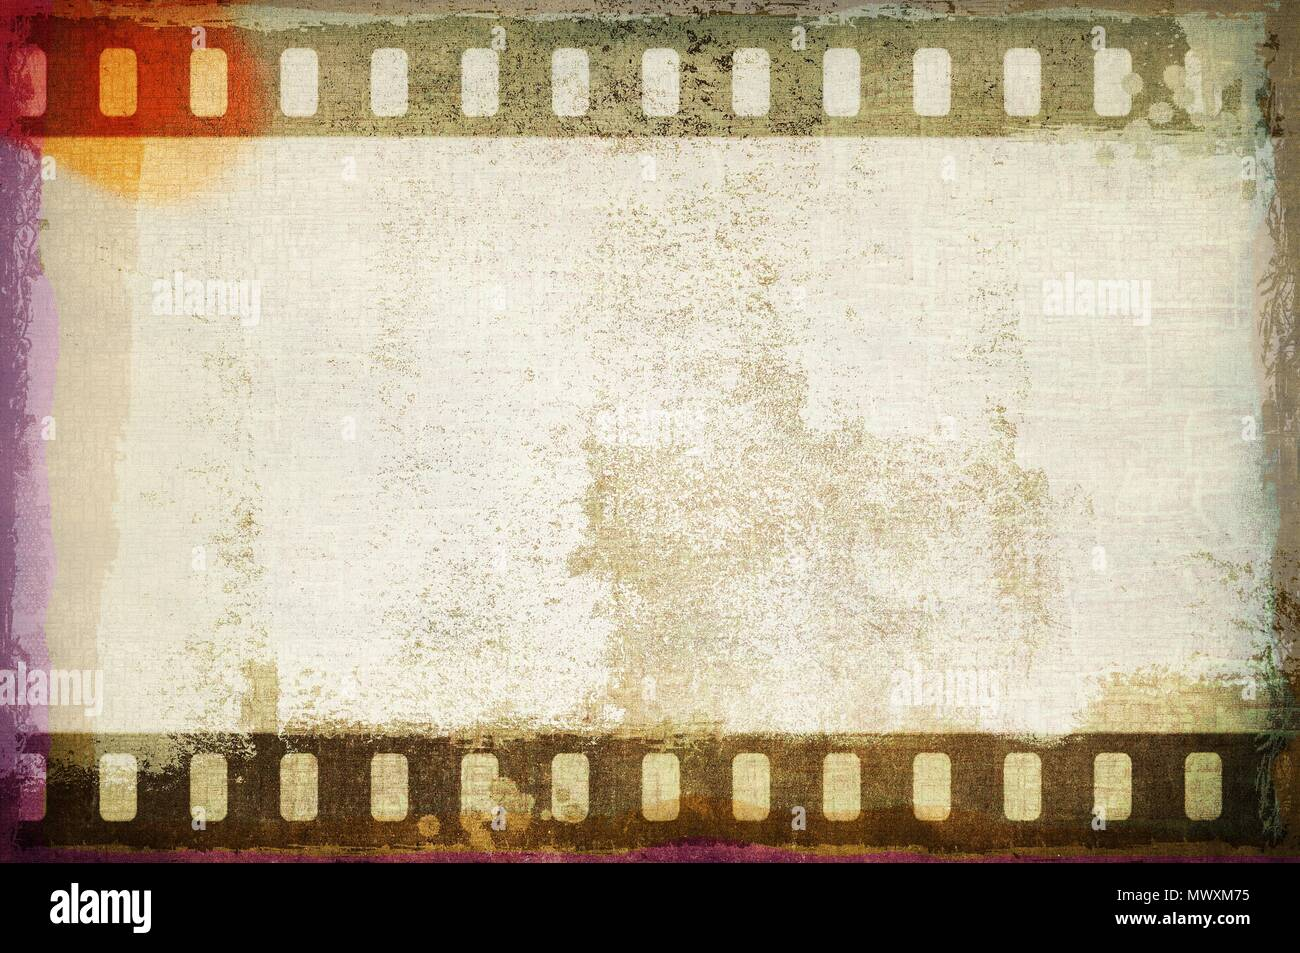 Grunge dripping film strip frame in sepia tones. - Stock Image